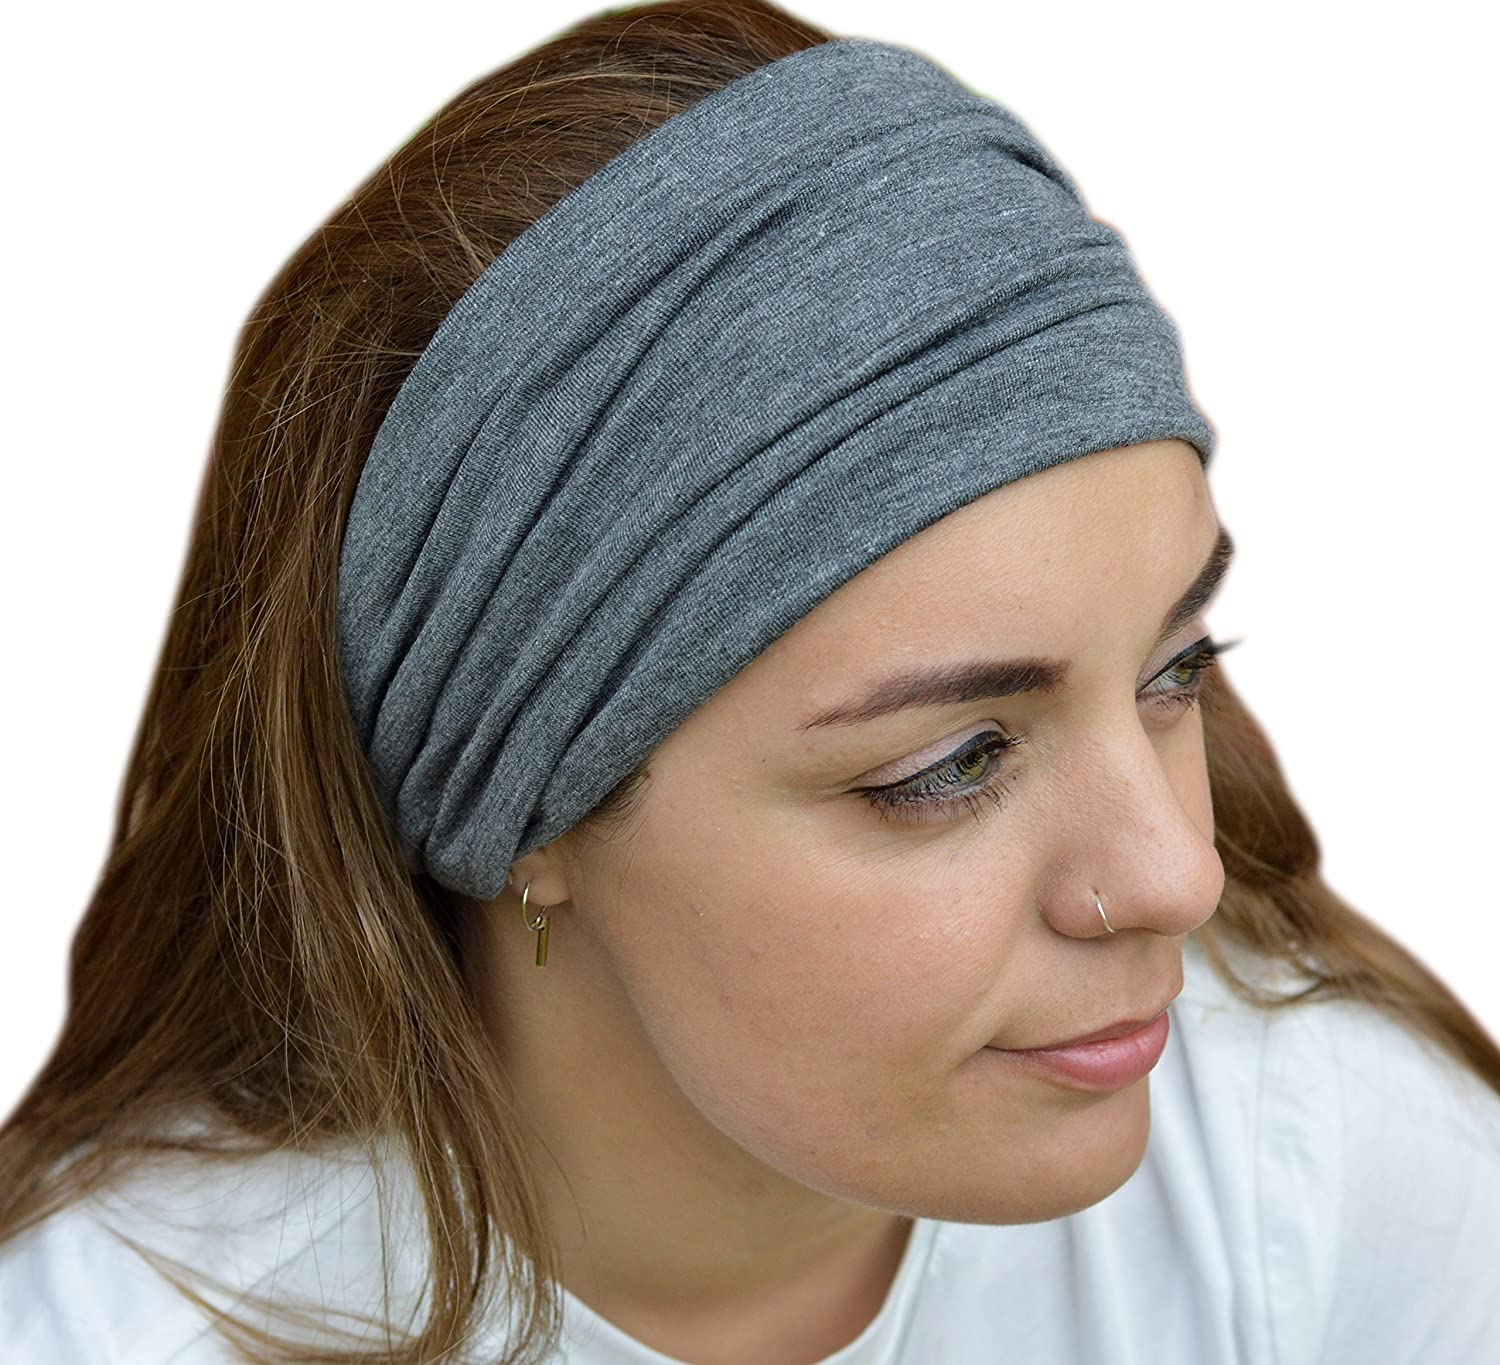 Antonia York Headbands for Women Head Wrap Hairband Bandana